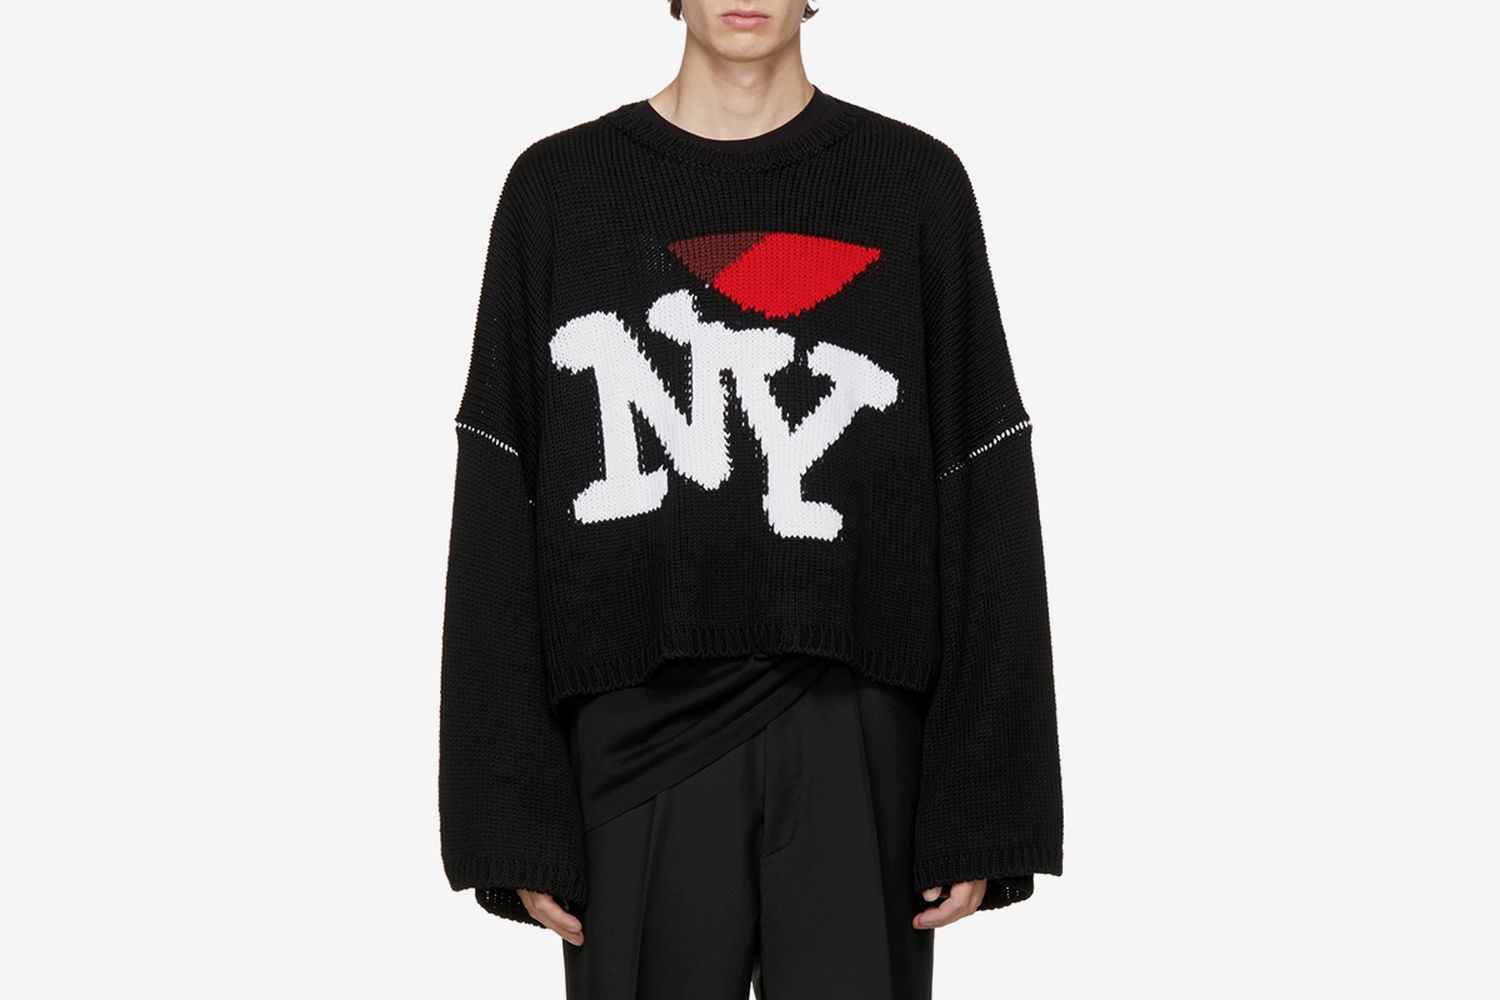 Oversize 'I Love NY' Sweater